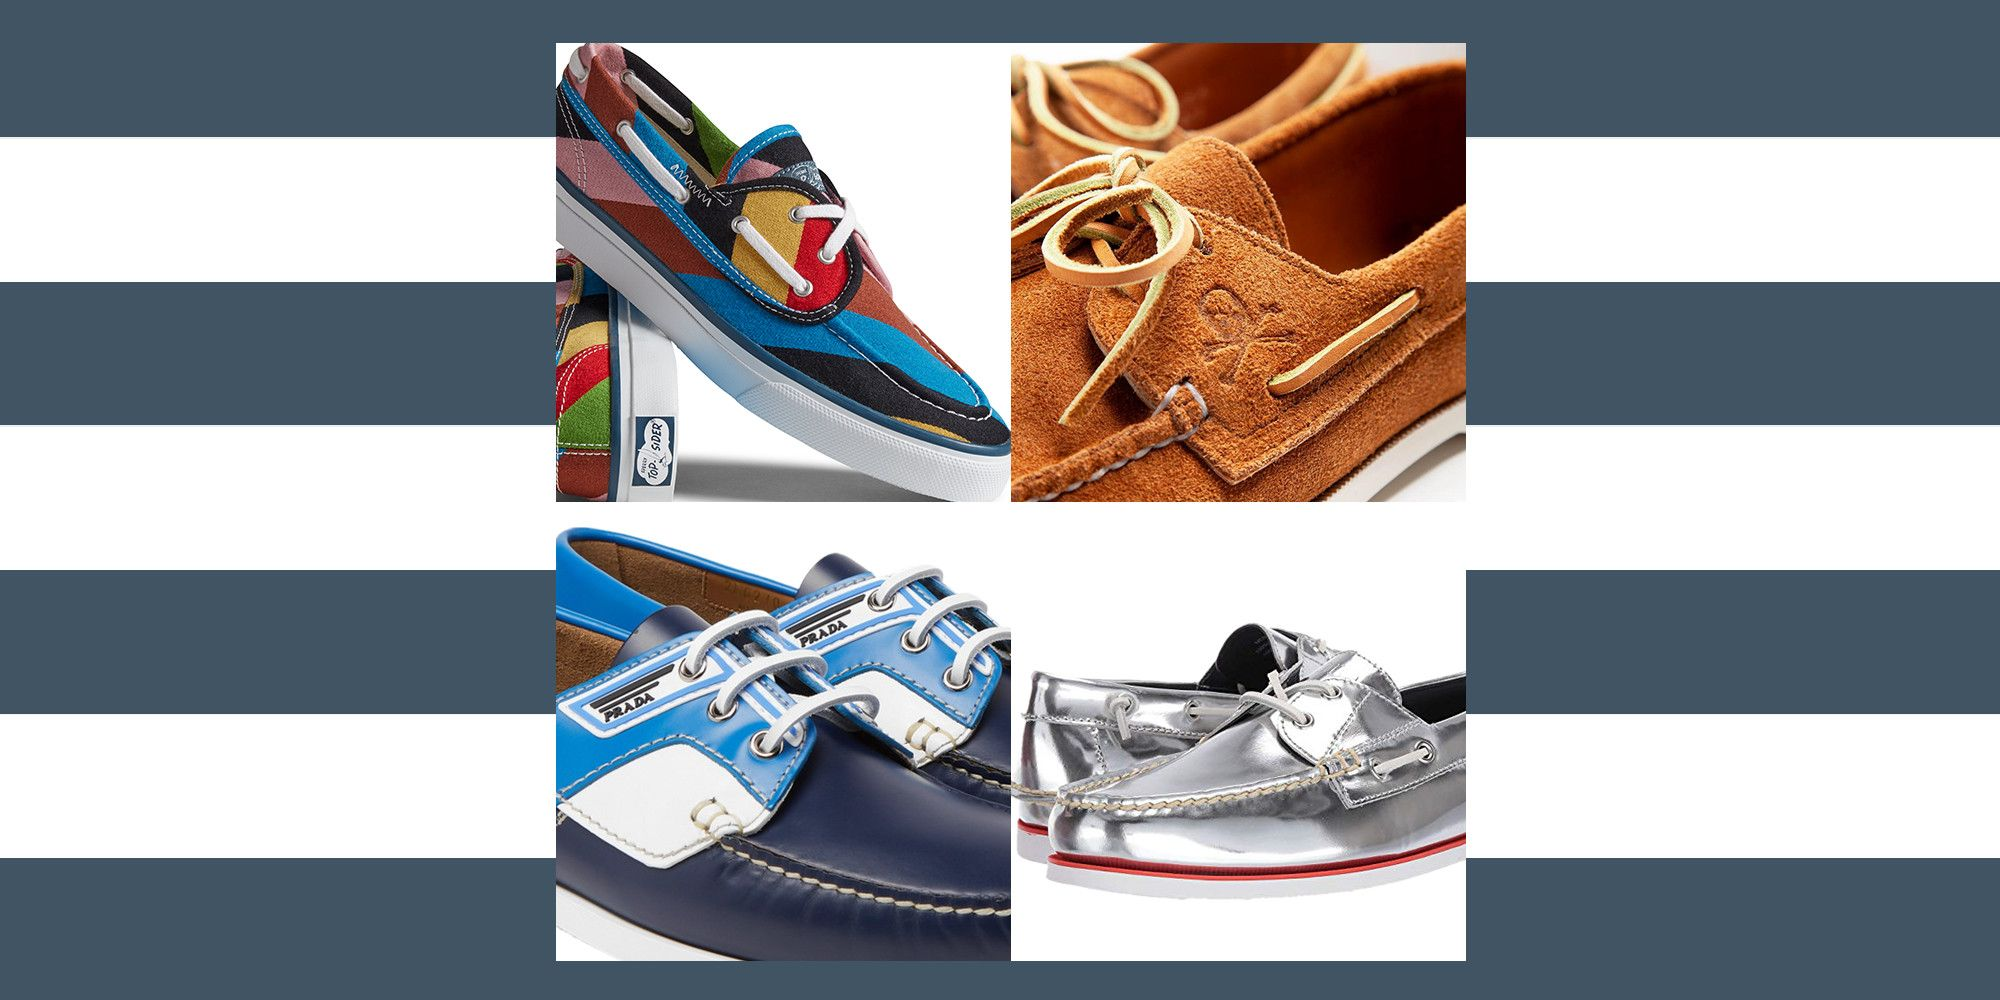 Boat Shoes Are Cool Again? Yep, Boat Shoes Are Cool Again.